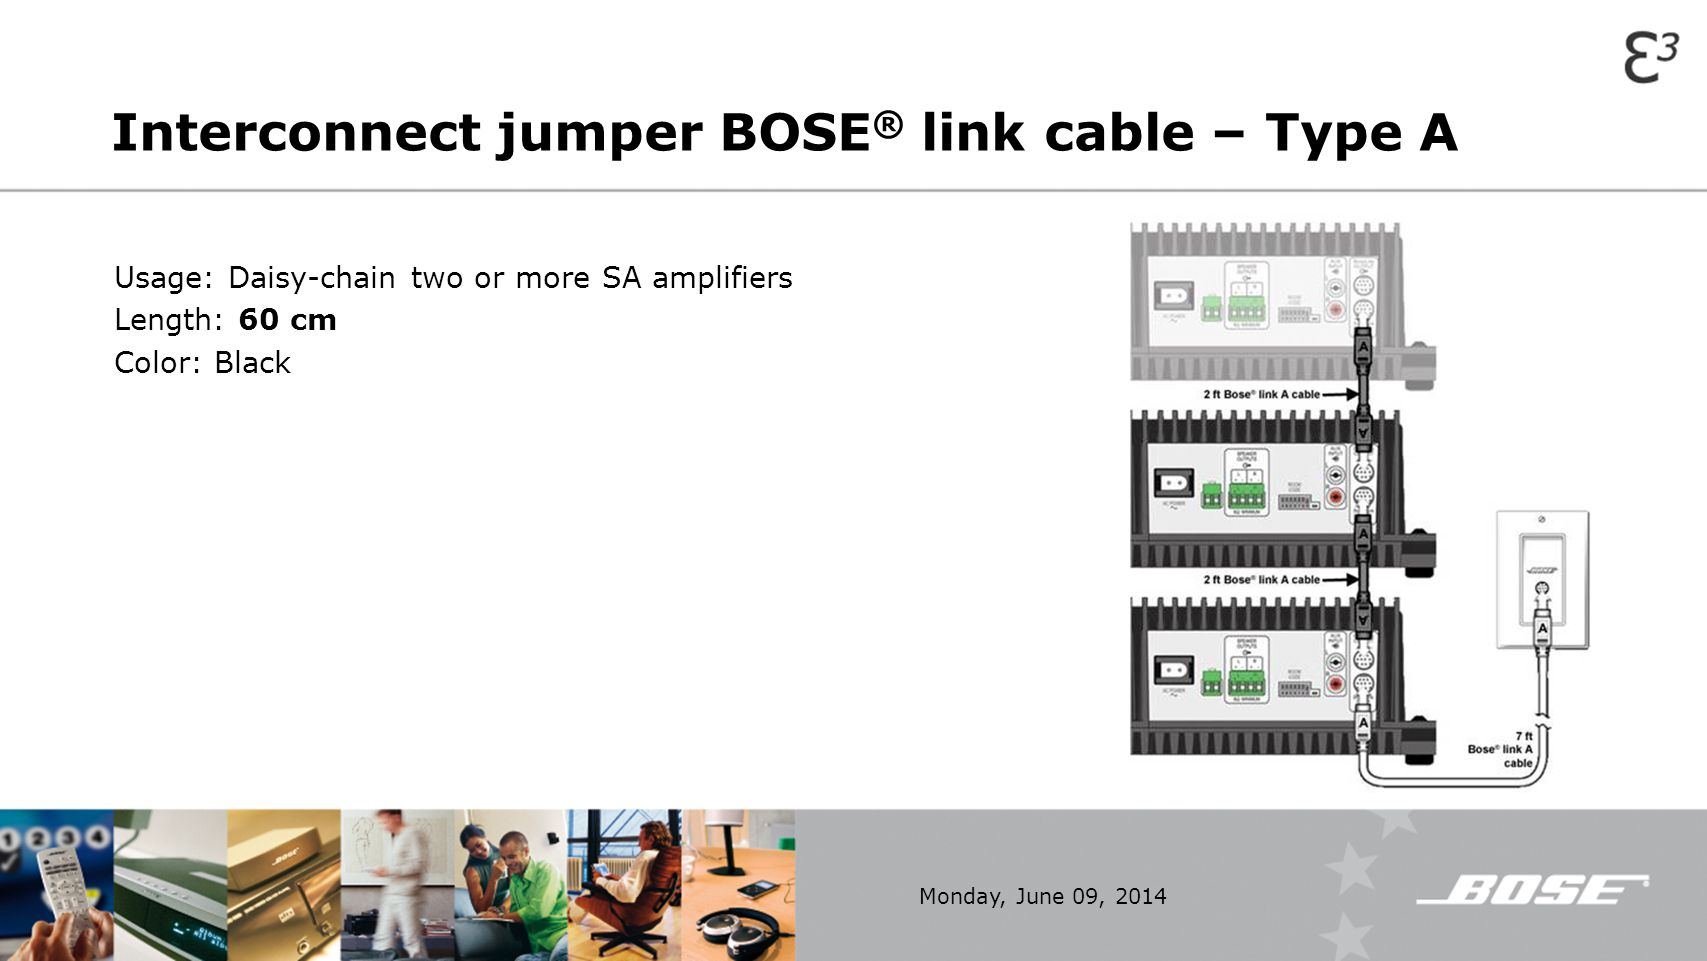 Bose Link Music Throughout Your Home Ppt Video Online Download Cable Wiring Diagram Interconnect Jumper Type A